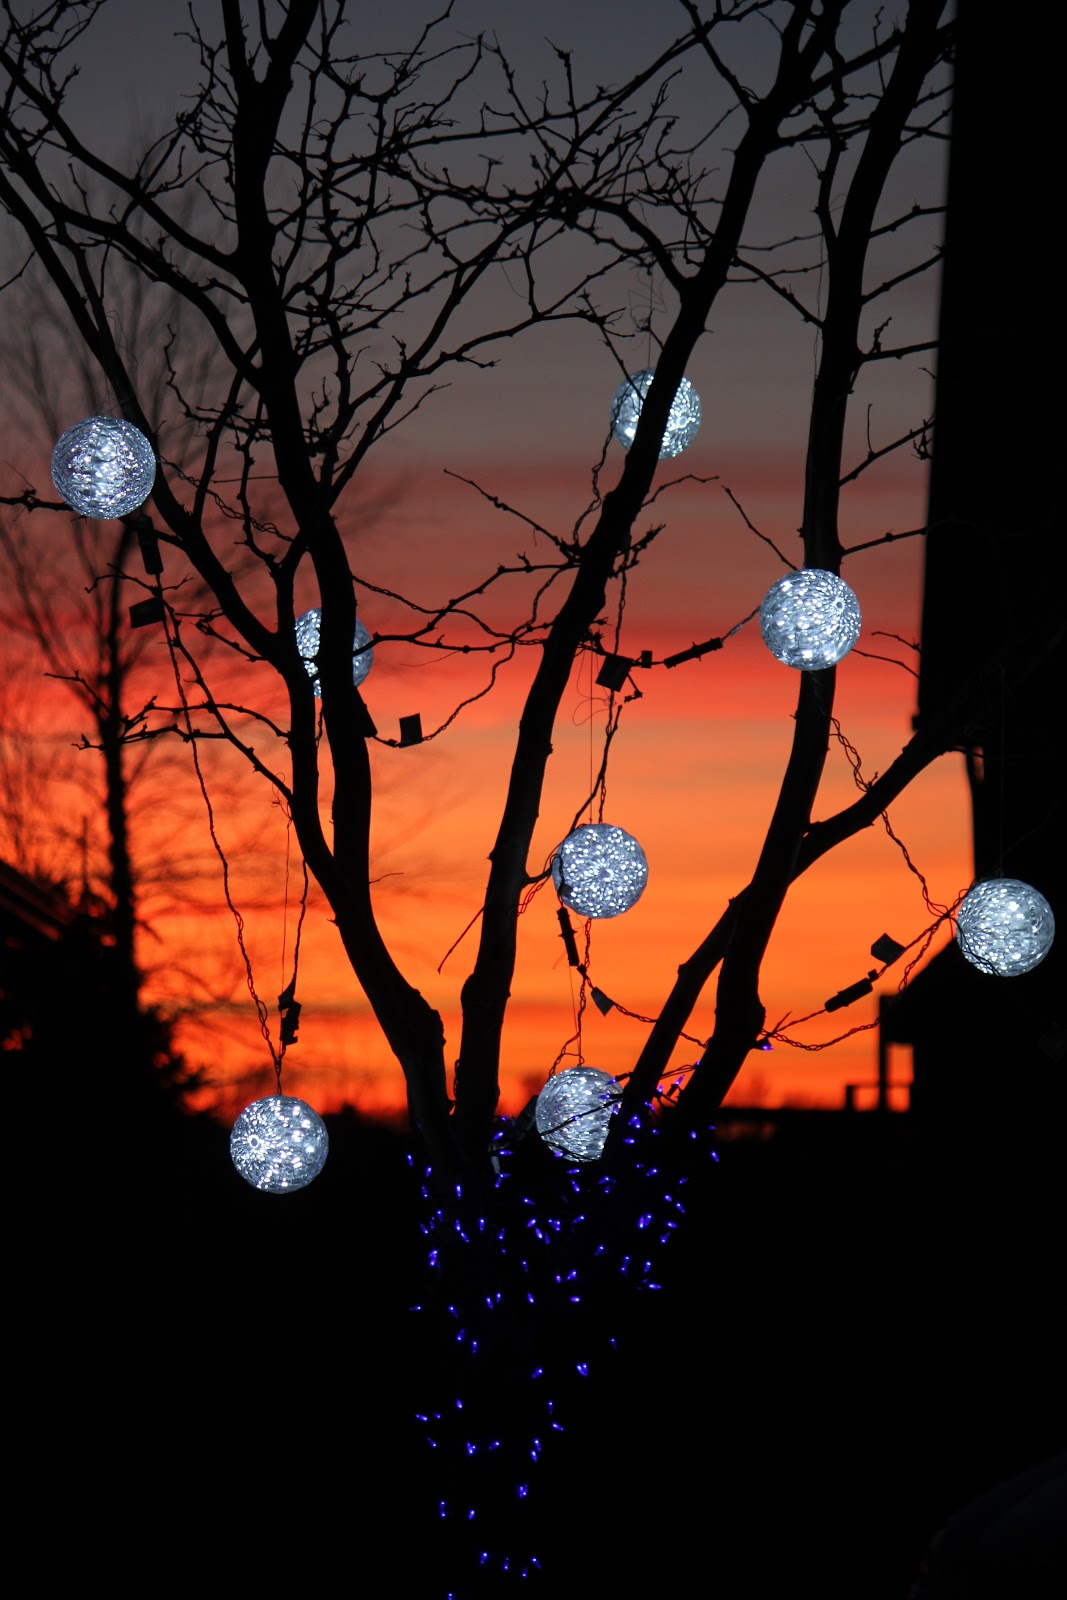 Outdoor-Christmas-Lighted-Balls-On-Tree